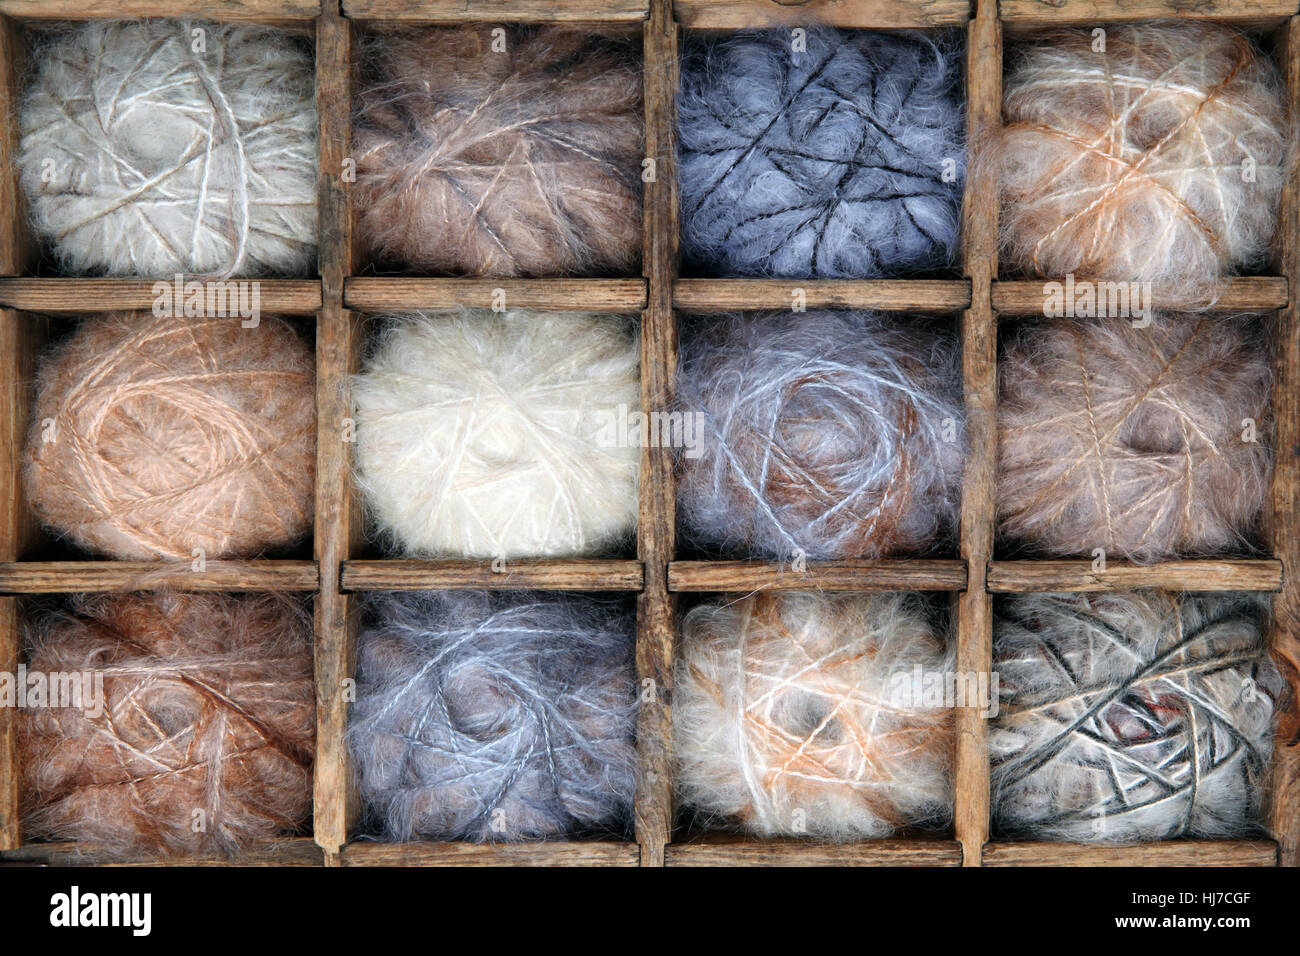 Image of colorful wool and mohair yarn collection. - Stock Image